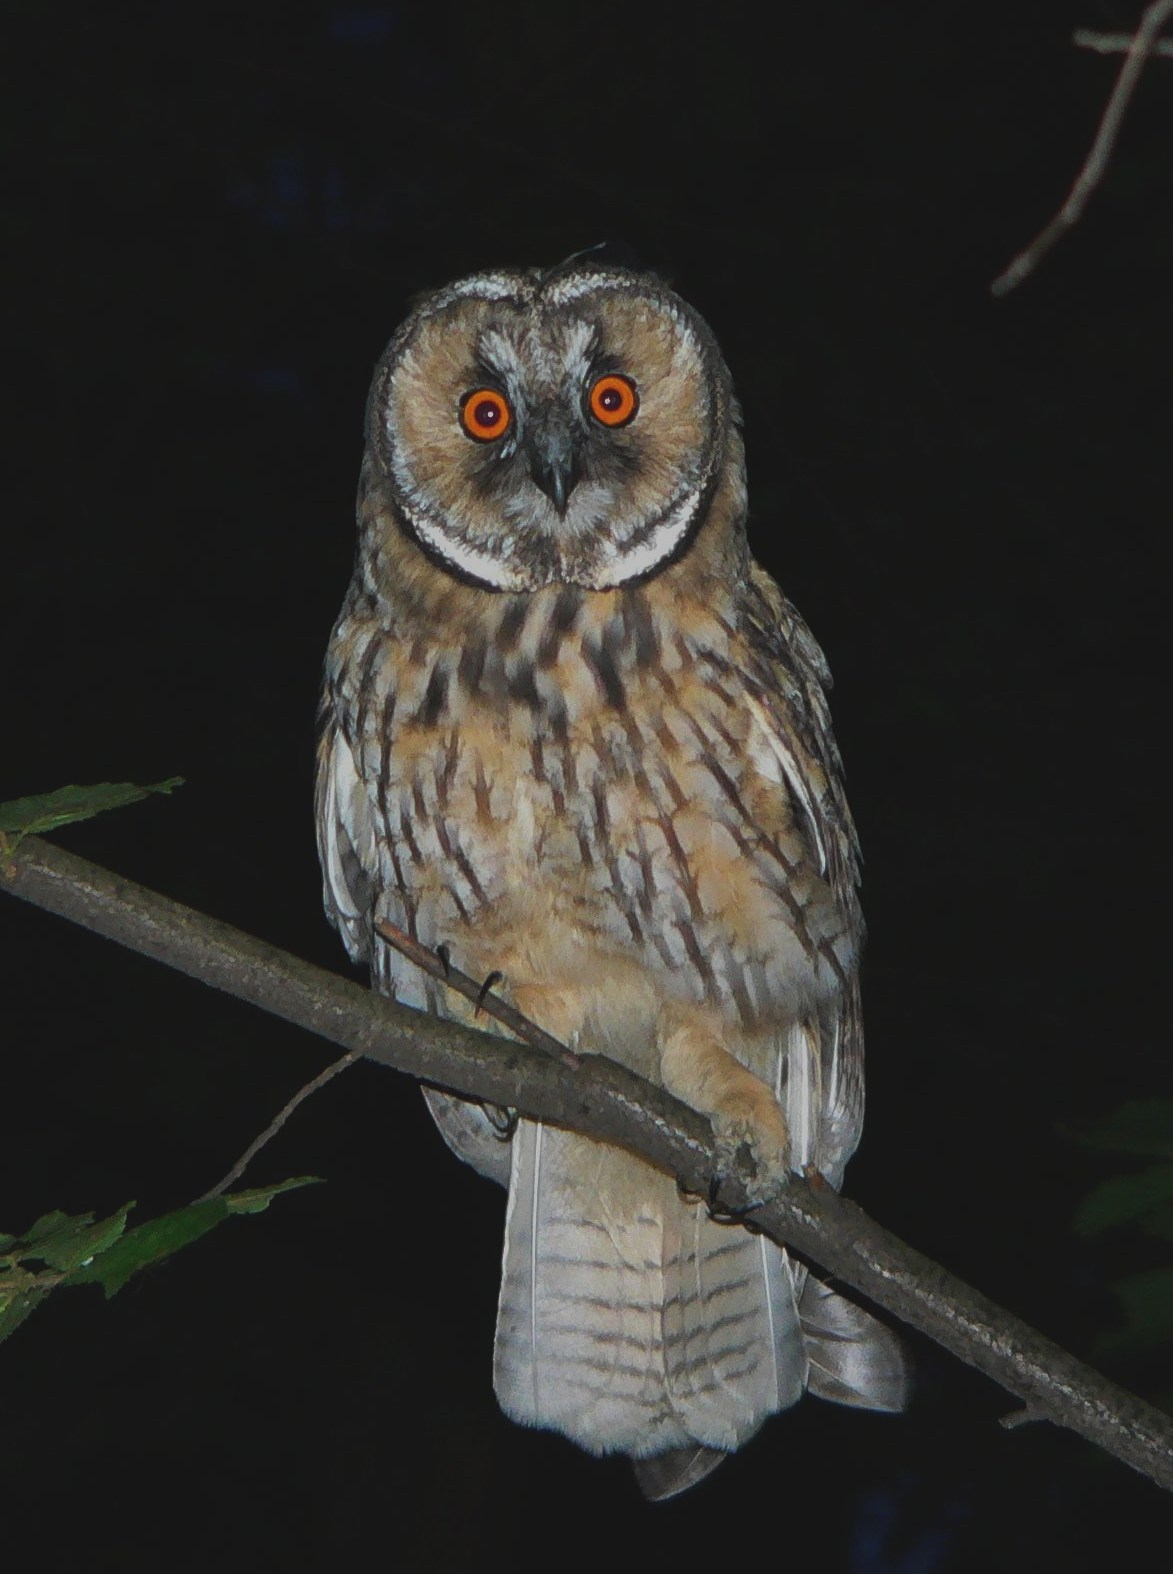 dating night owls Anyone dating or in a relationship should visit this website night owls have higher iqs why are night owls generally more intelligent than early birds.